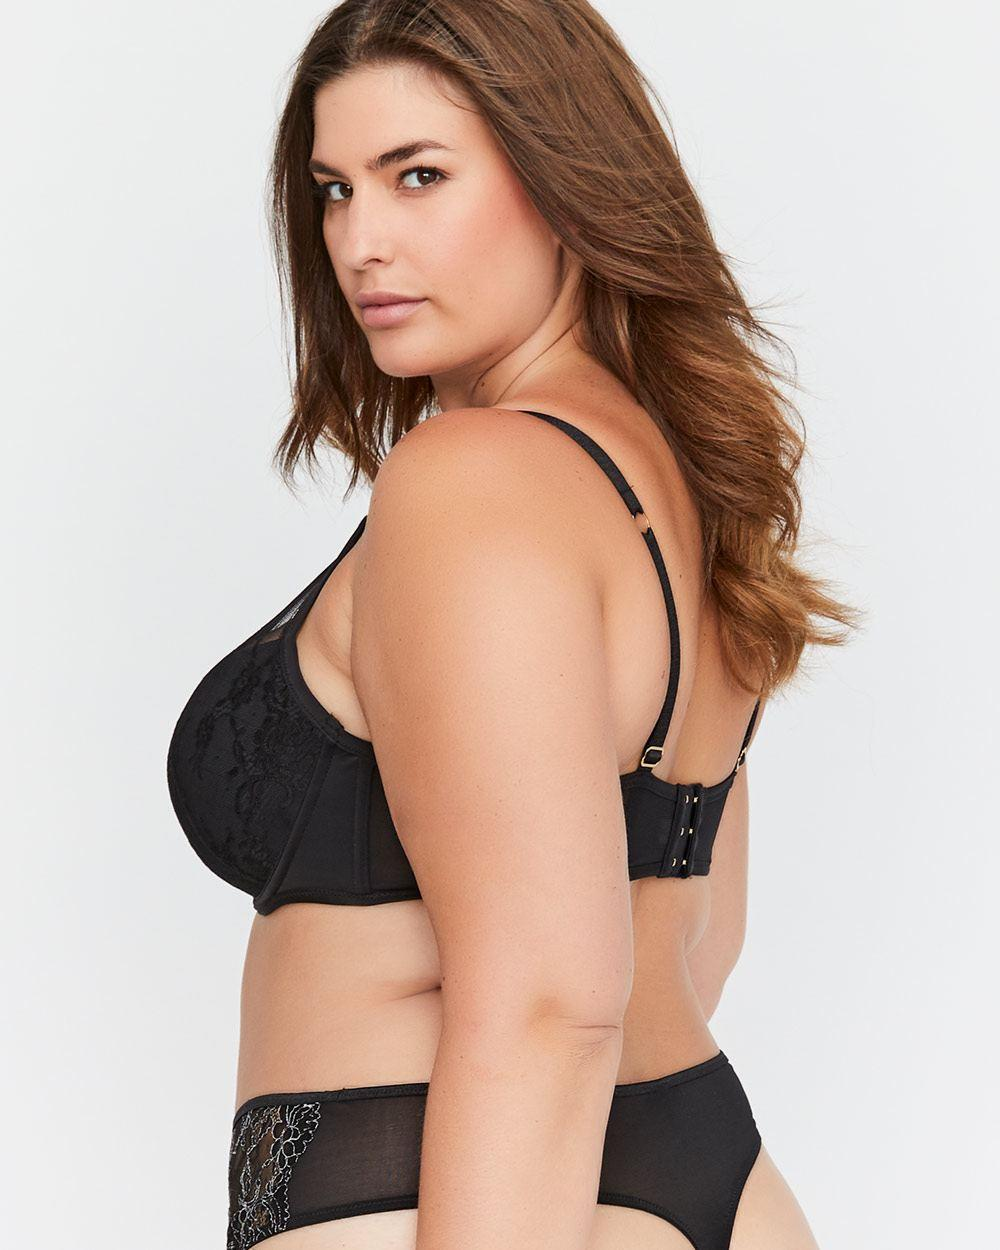 4499aef5a4 Lyst - Addition Elle Micro Jersey Demi Cup Diva Bra With Lace - Ashley  Graham in Black